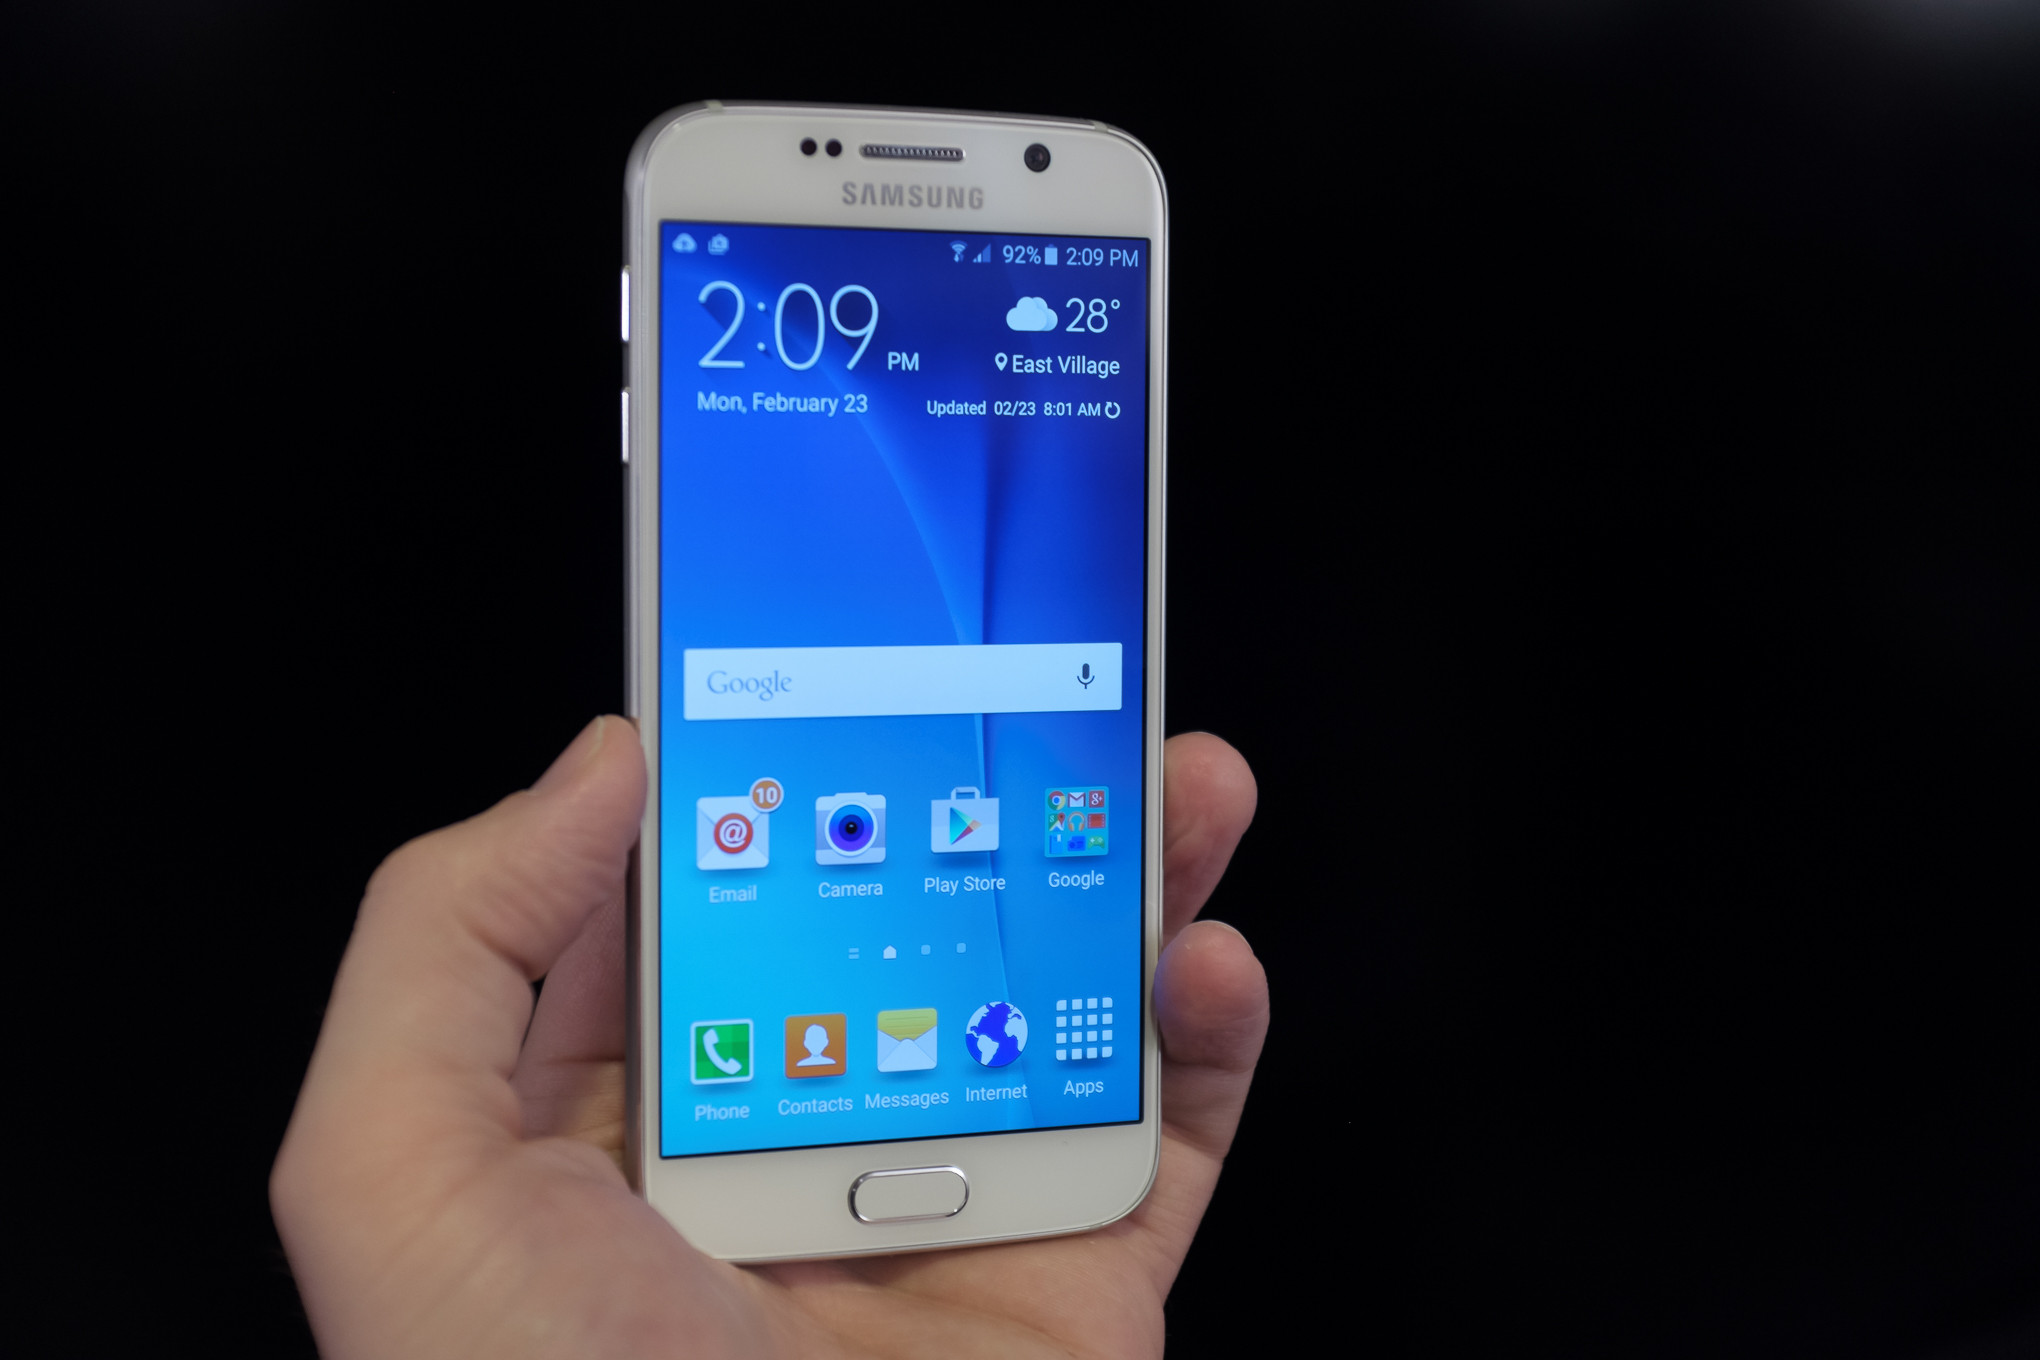 Samsung Galaxy S6 and S6 Edge photos